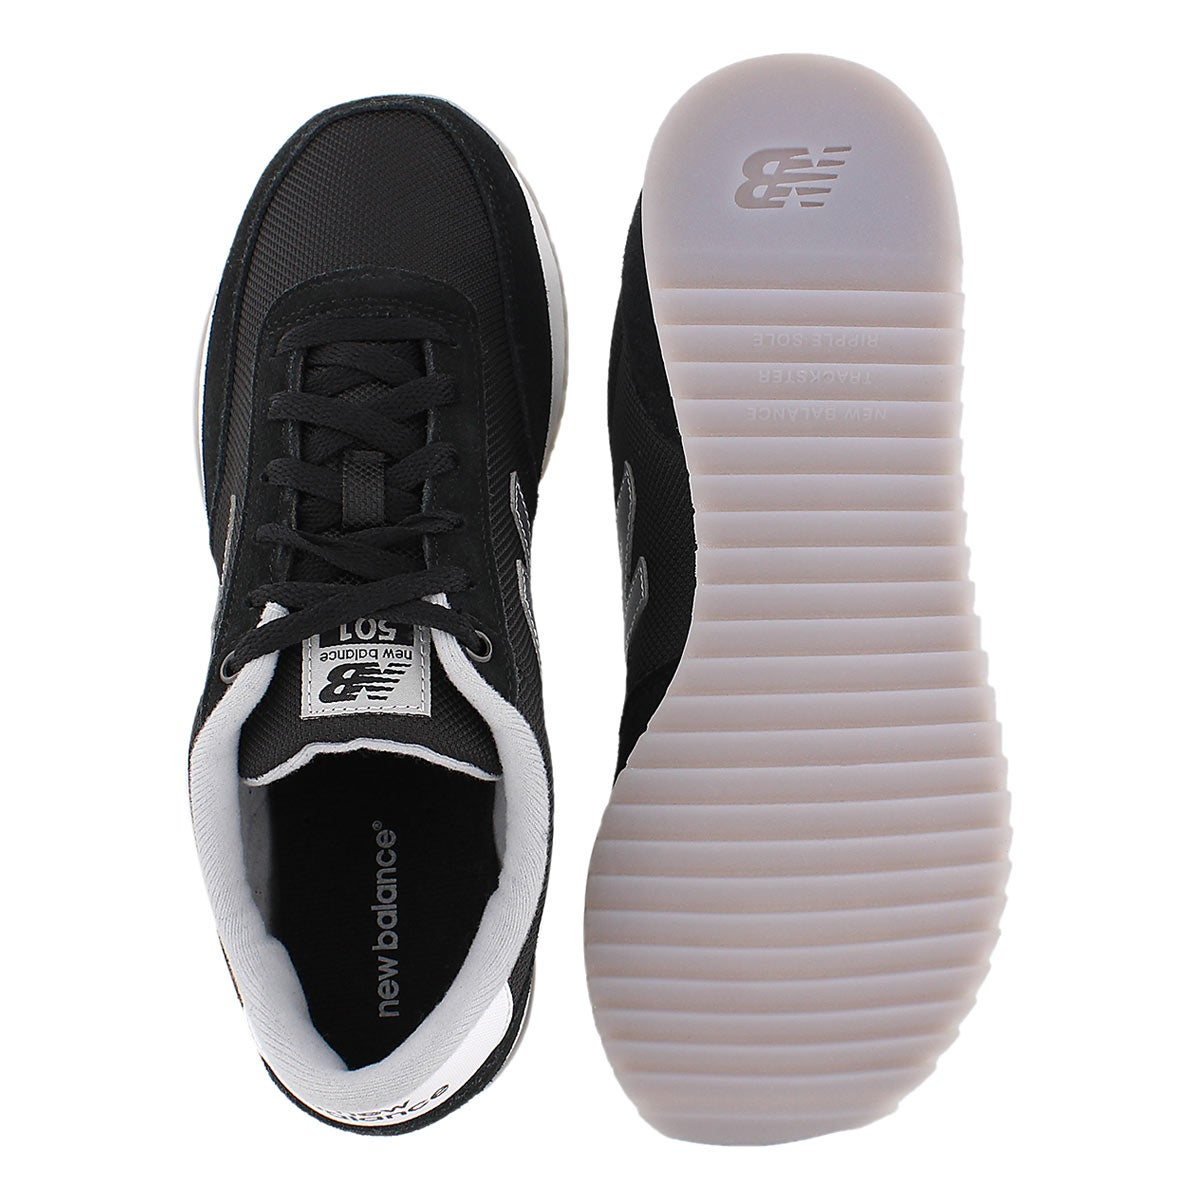 Lds 501 black lace up sneaker